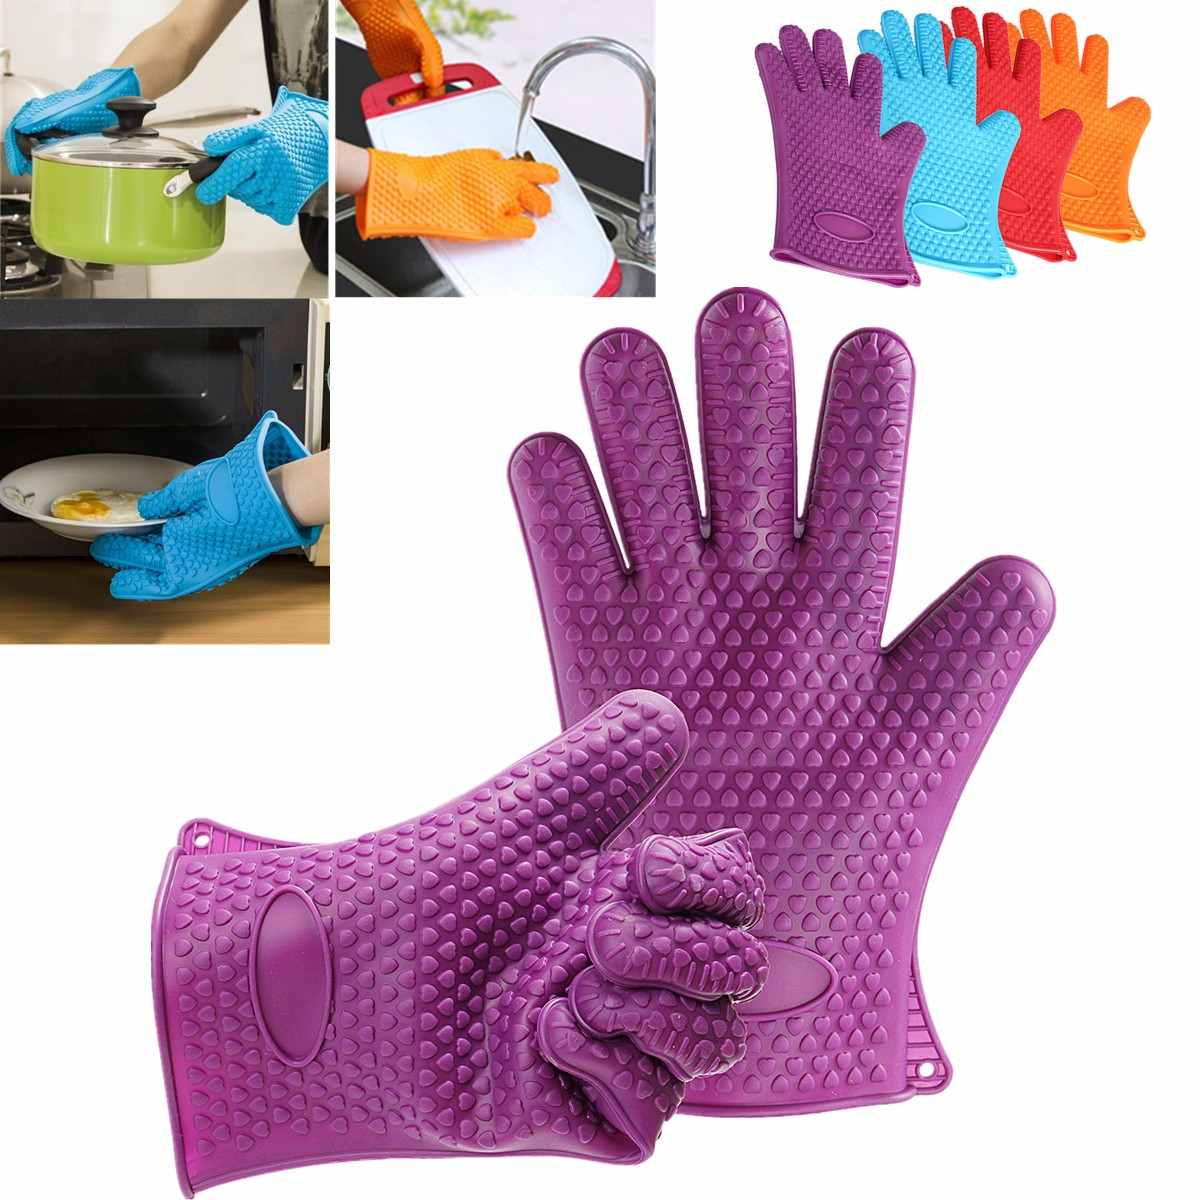 1 Pair food grade Heat Resistant Silicone Kitchen barbecue oven glove Cooking BBQ Grill Glove Oven Mitt Baking Protective gloves winter solid color knitted tunic dresses pregnant woman bottoming knitwear long sleeve wool loose dress women clothes pullovers